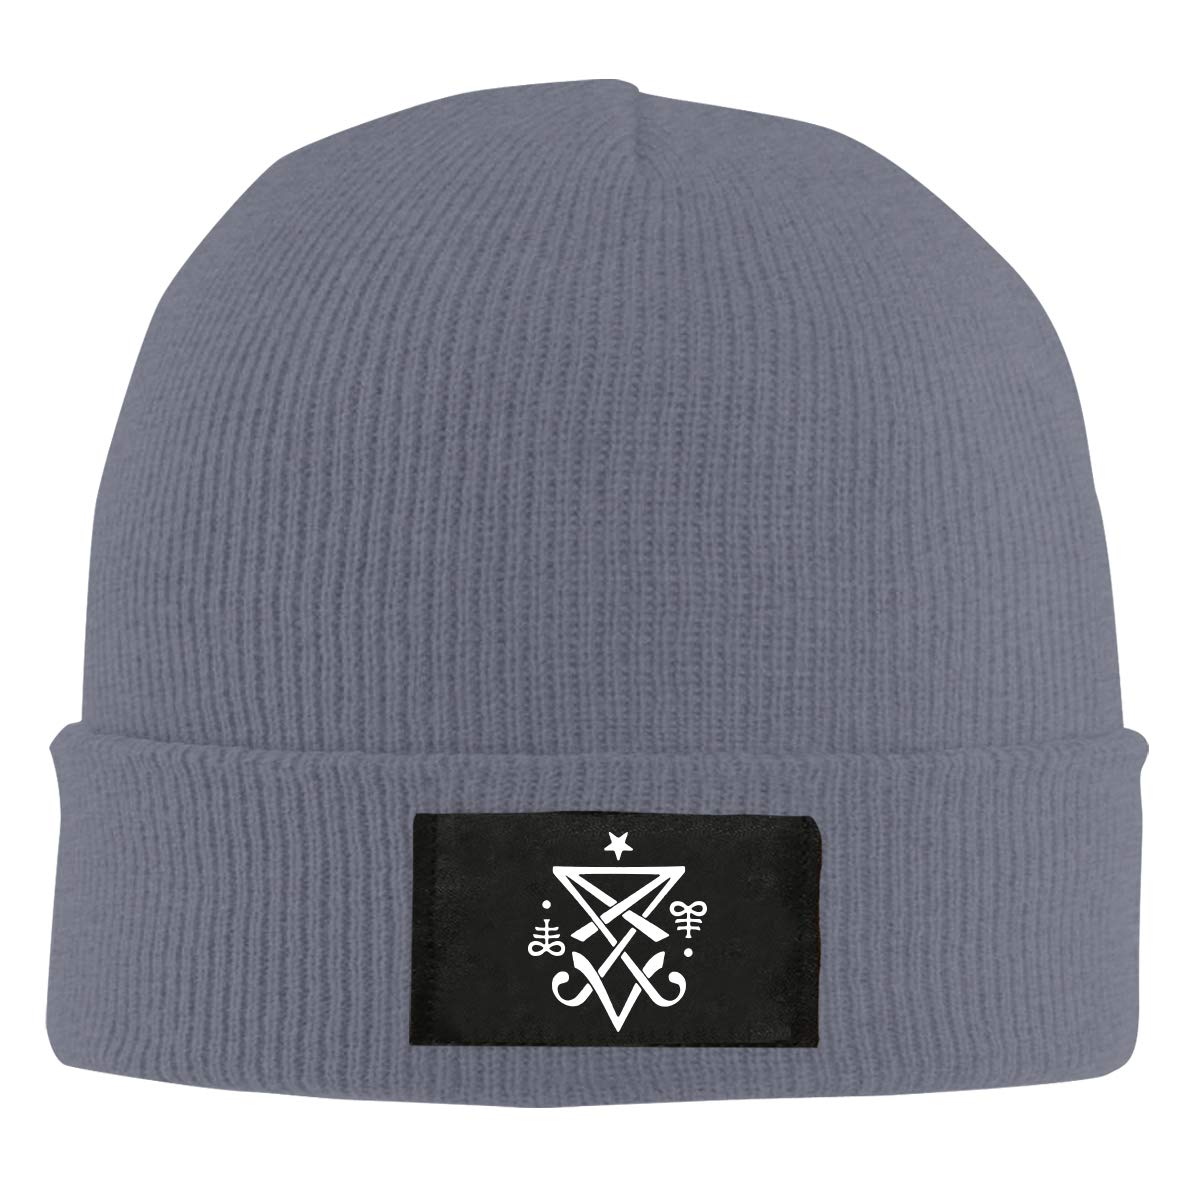 Occult Sigil of Lucifer Satanic1 Men Women Knitted Hat Stretchy Beanie Cap